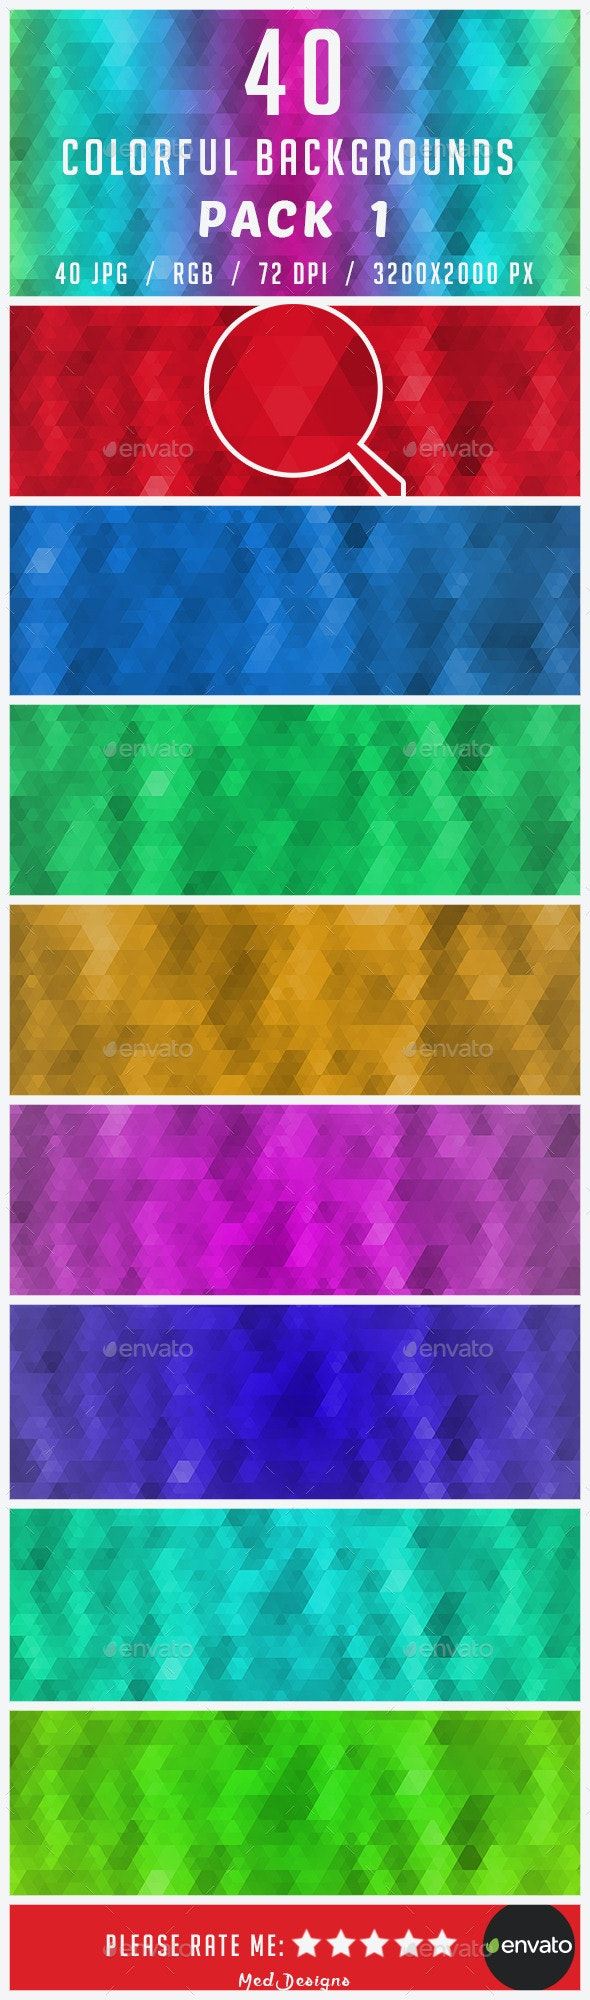 40 Colorful Backgrounds (Pack 1) - Backgrounds Graphics